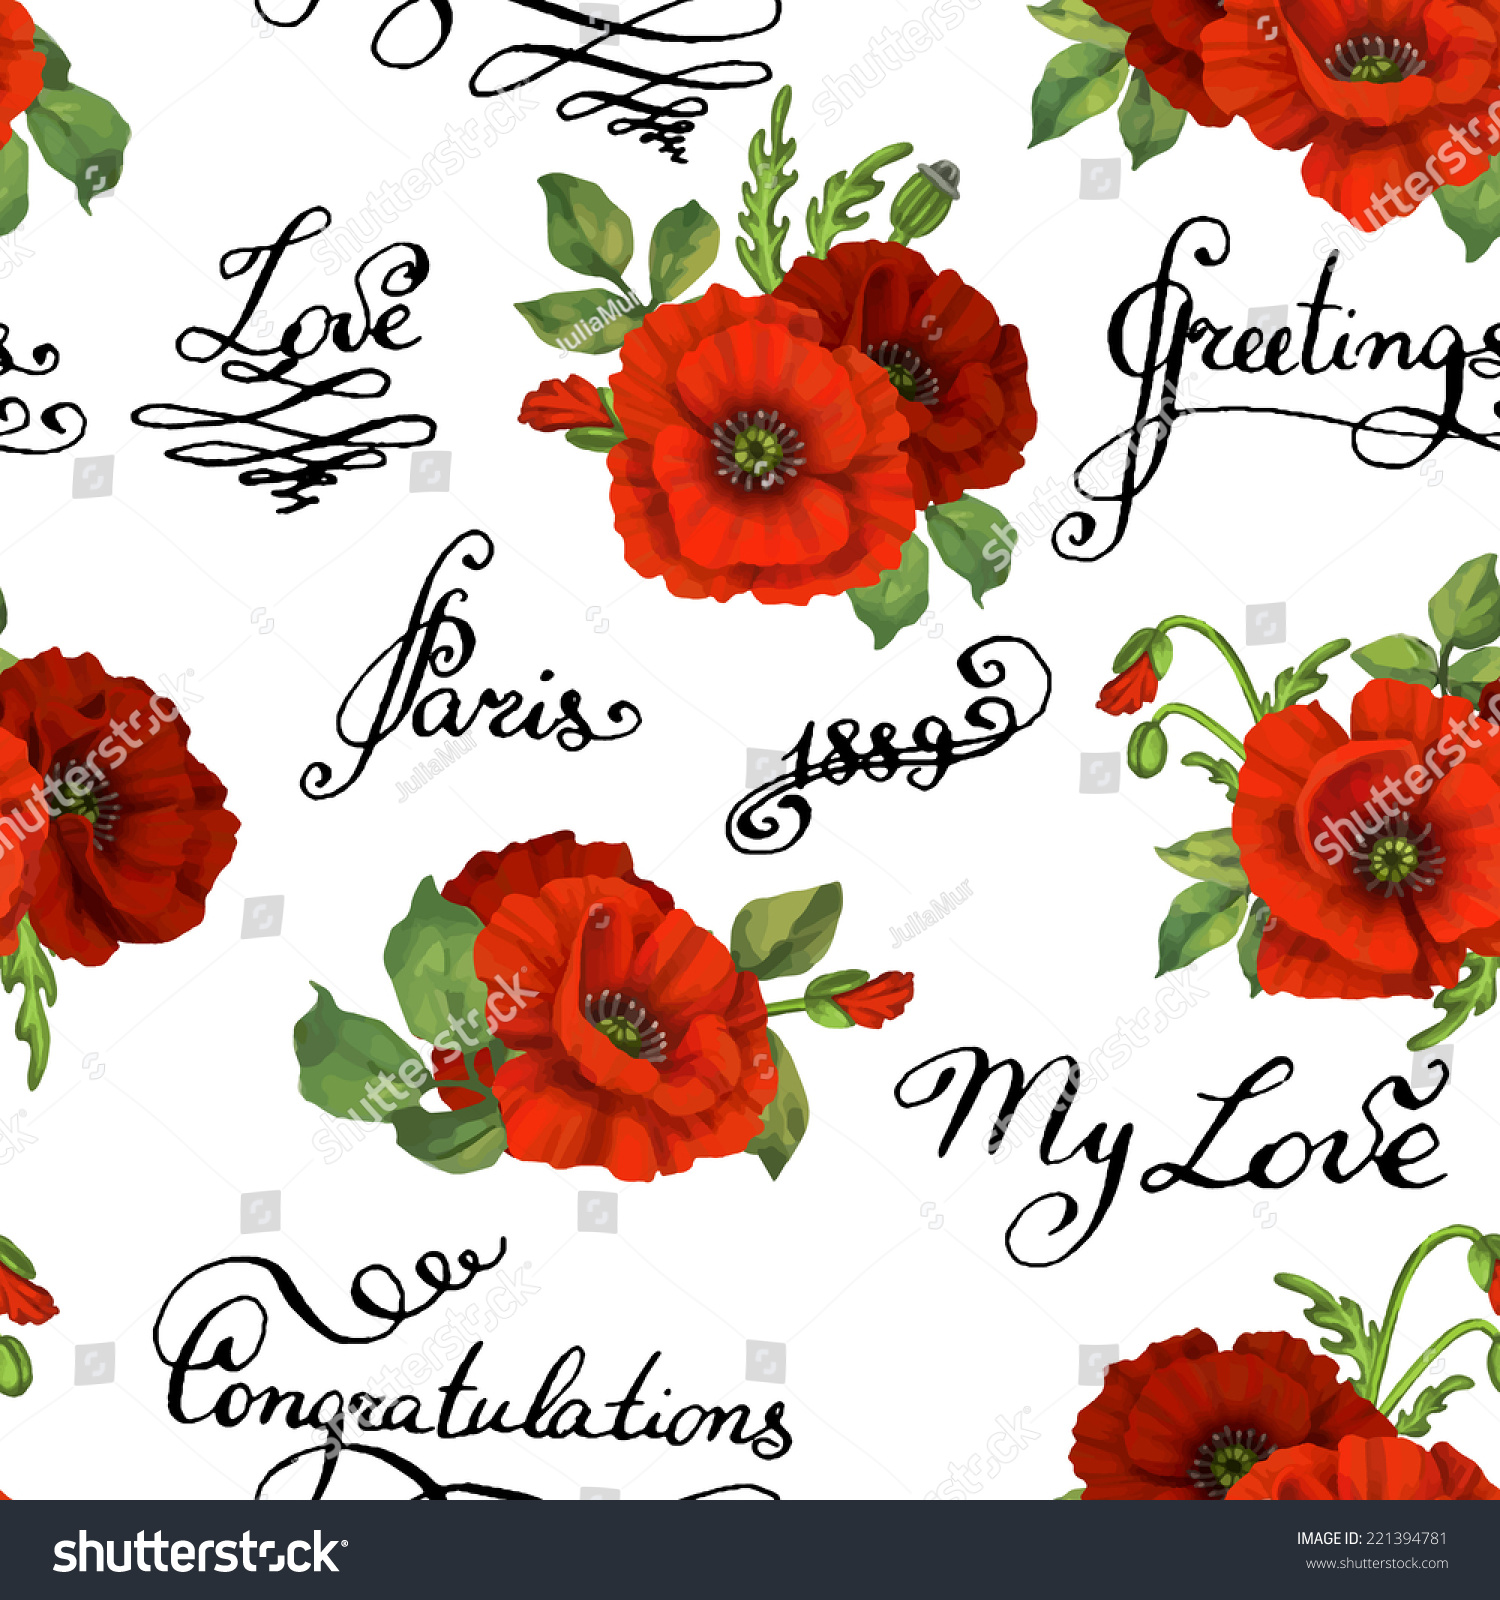 Romantic vector seamless background greeting card wallpaper vector art - Seamless Floral Pattern With Words Flower Vector Illustration Elegance Wallpaper With Poppy On Floral